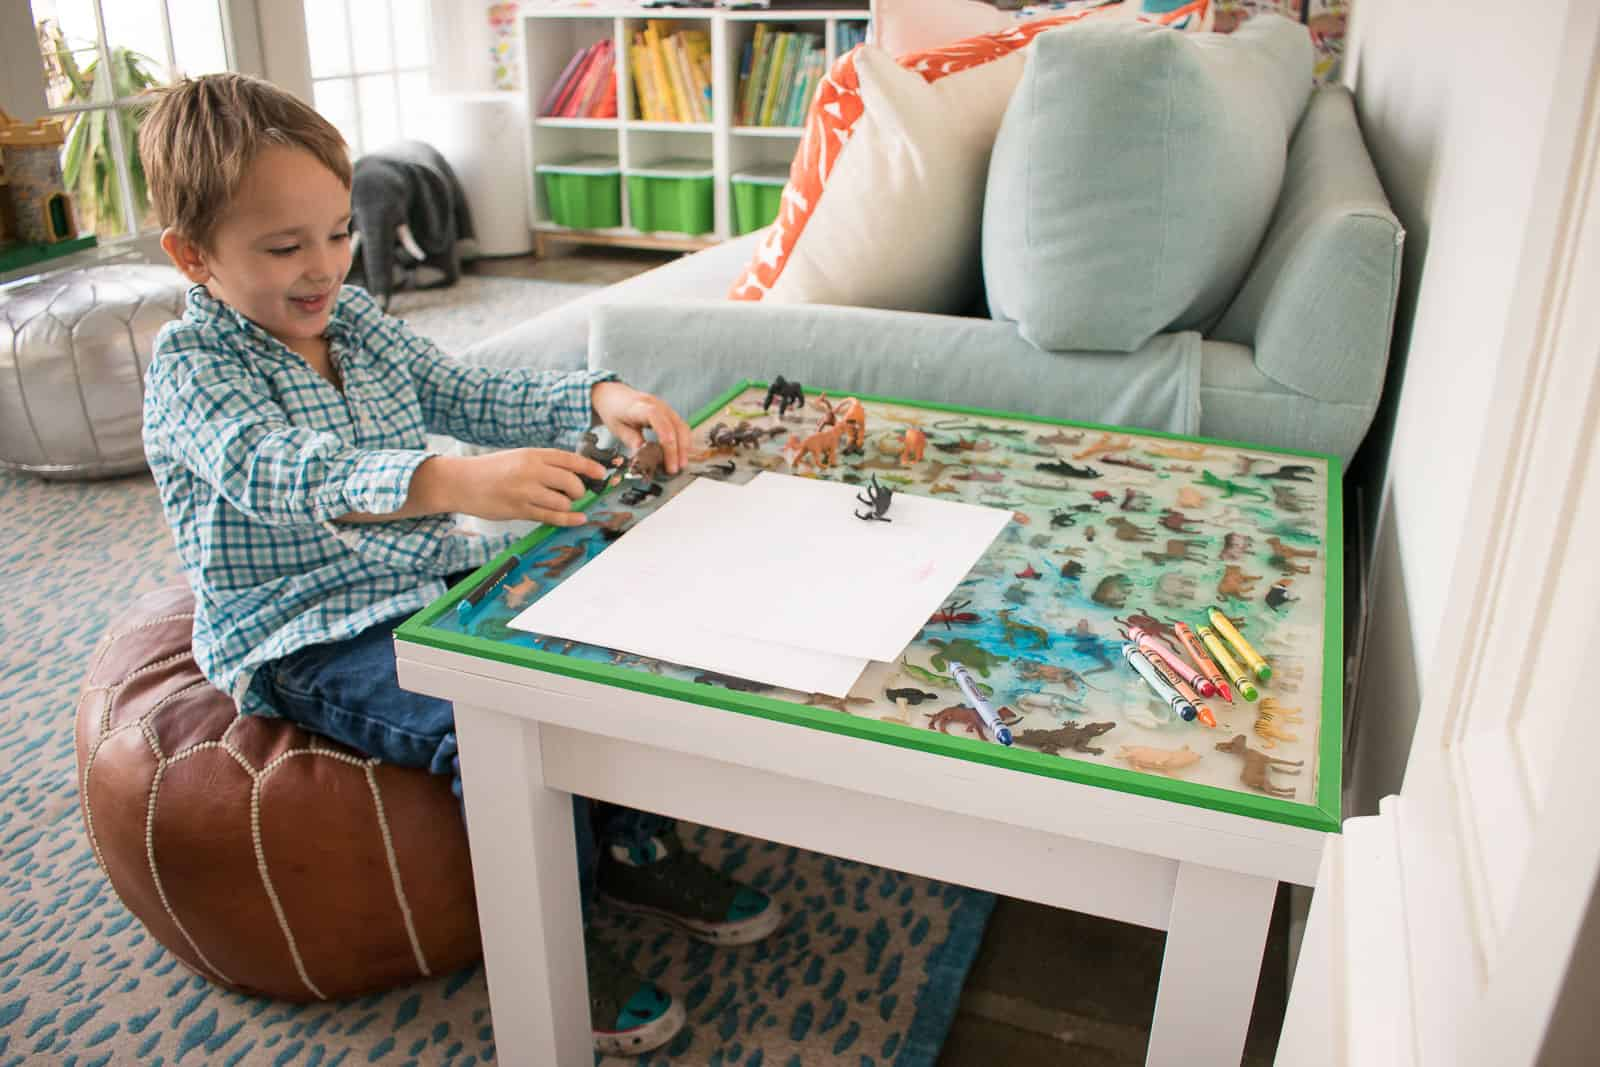 arthur playing at epoxy table